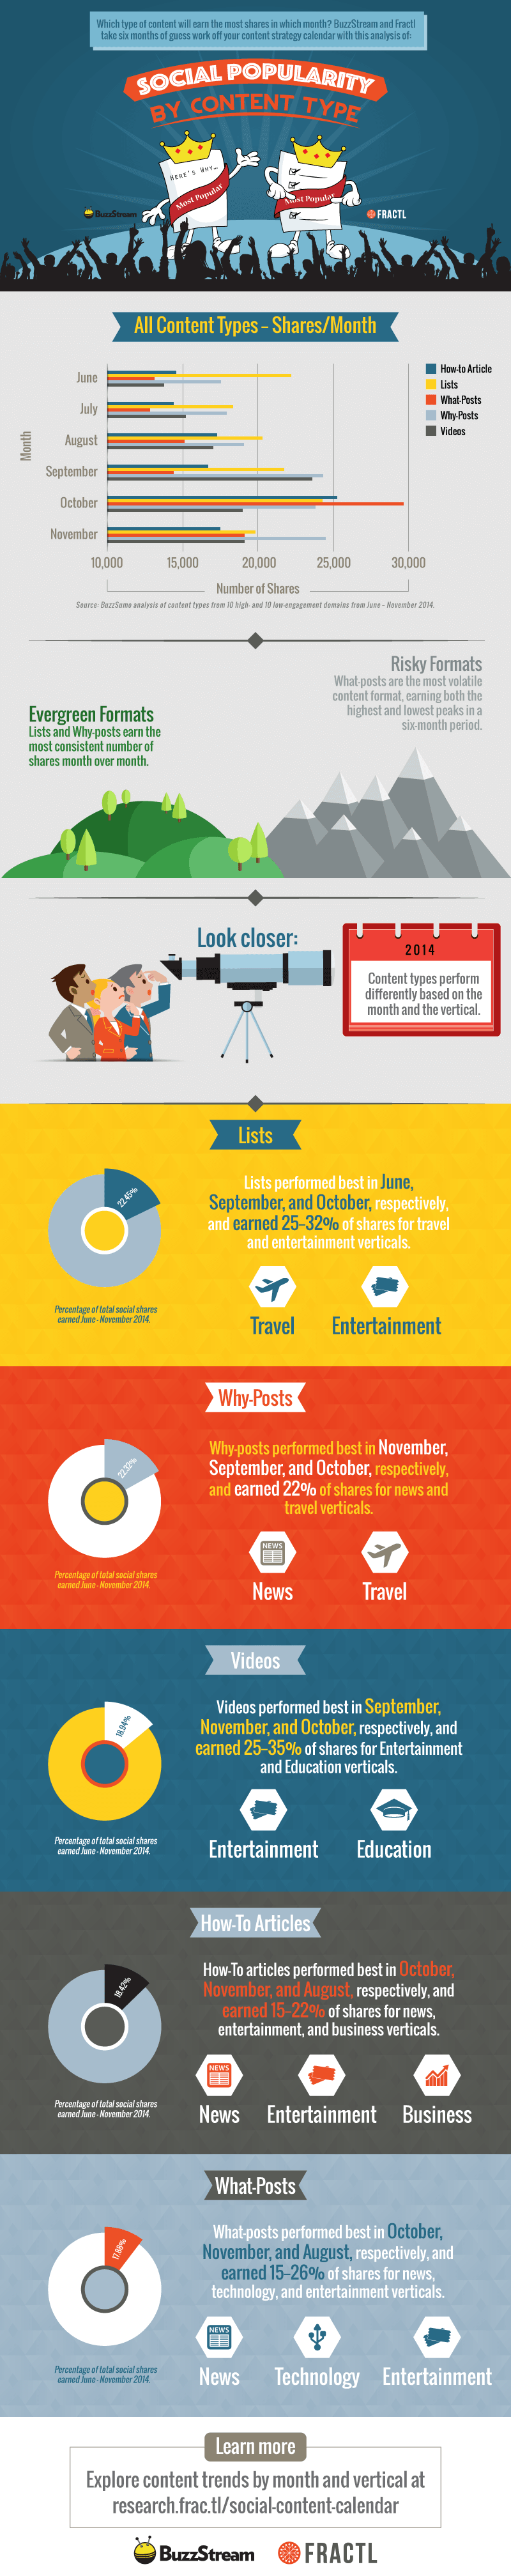 Newscred-best-times-to-post-infographic